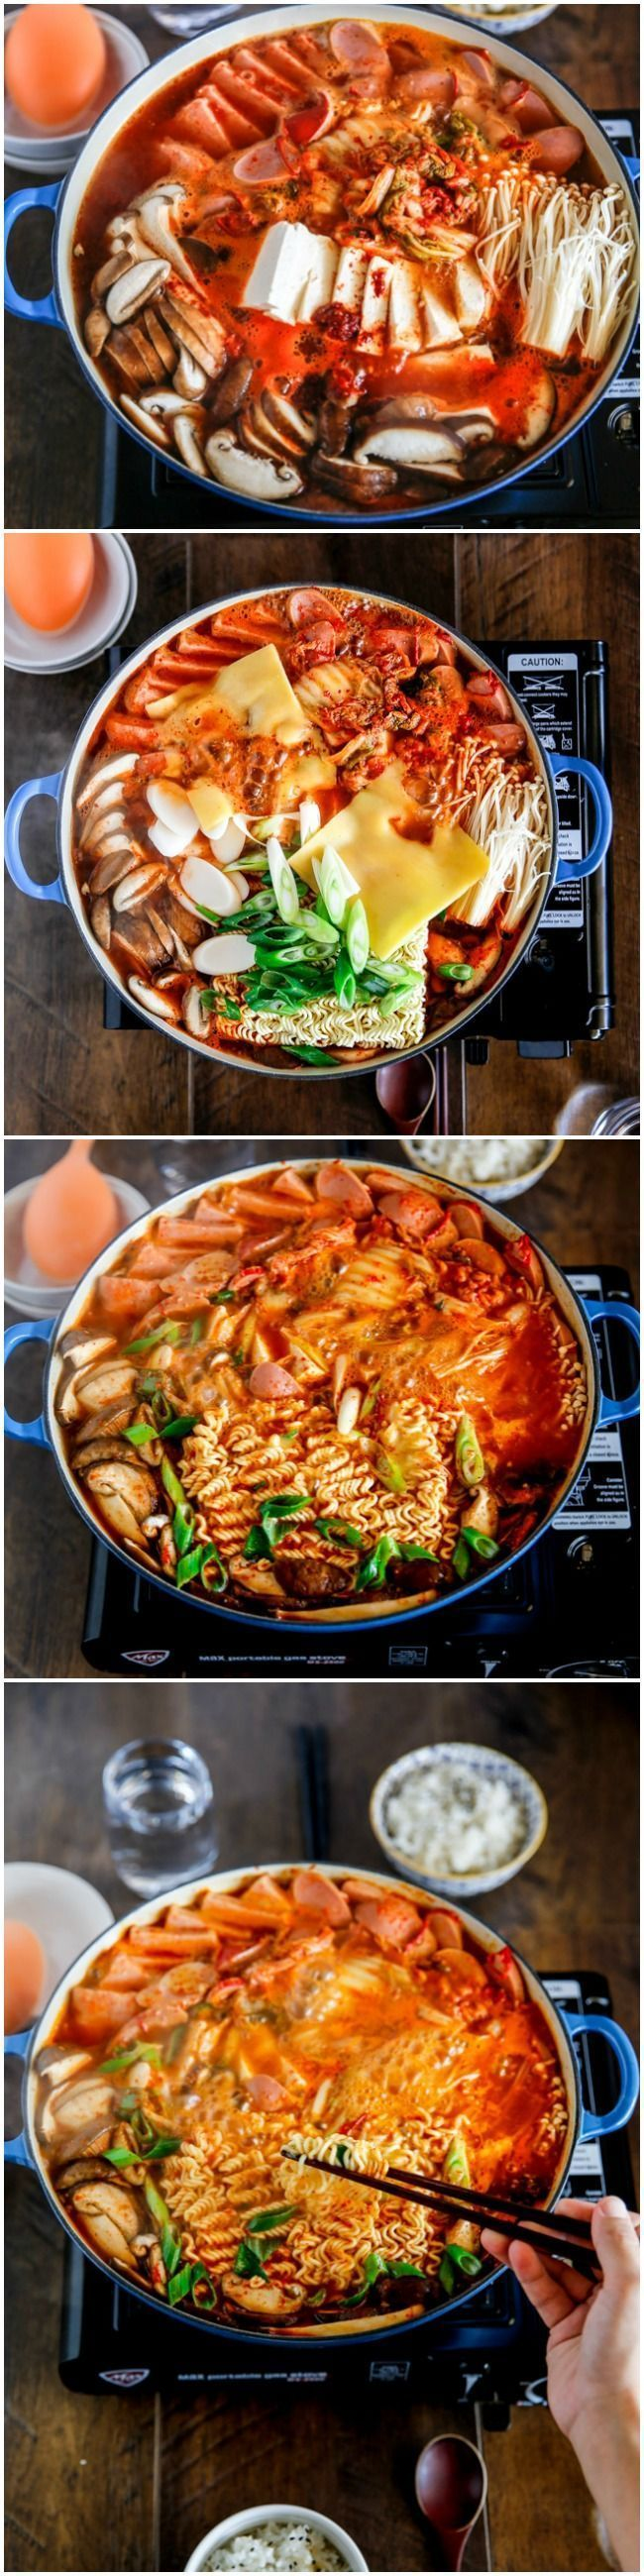 Korean army stew (Budae Jjigae) is a Korean fusion hot pot dish loaded with Kimchi, spam, sausages, mushrooms, instant ramen noodles and cheese. The soup is so comforting and addictive!